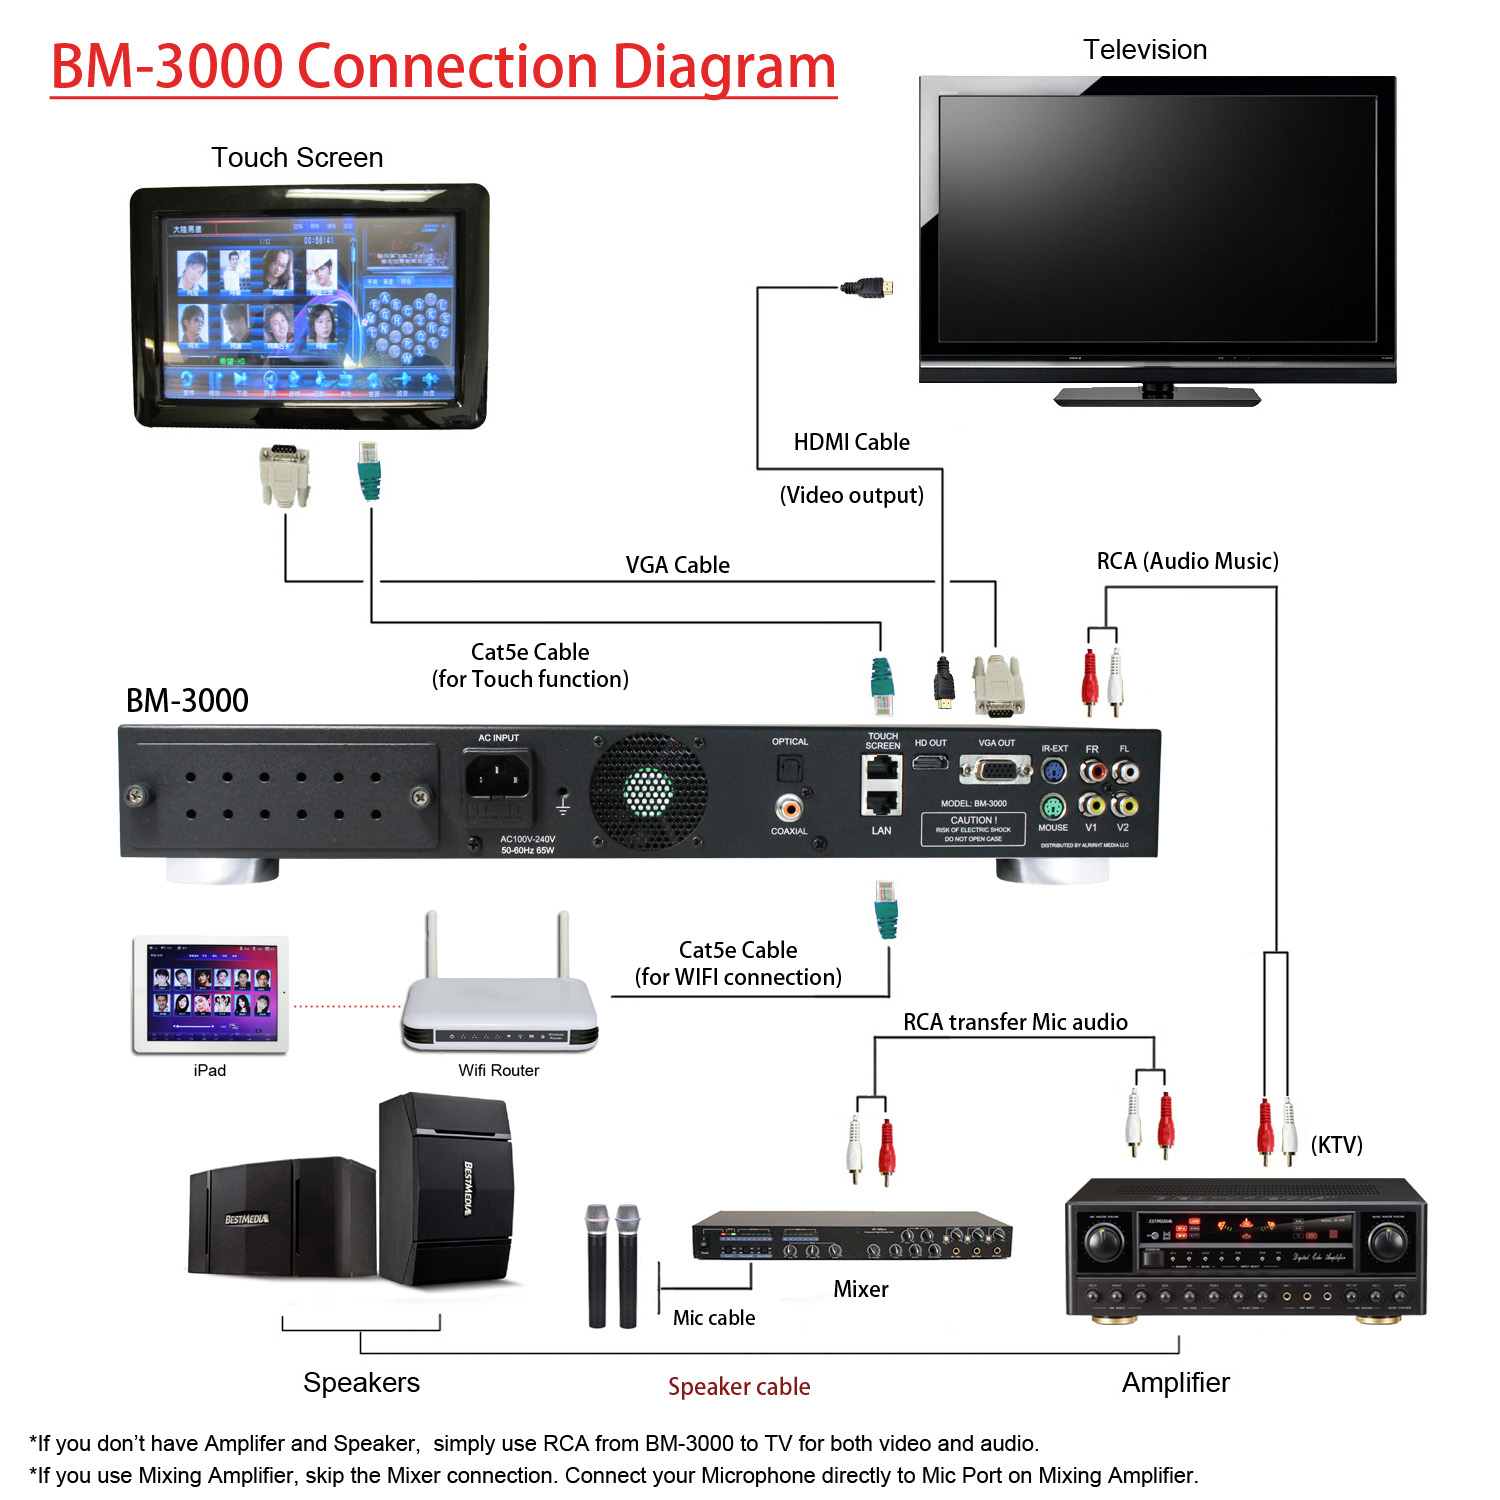 hight resolution of bm 3000 connection diagram 1 basic karaoke machine required bm 3000 karaoke system basic microphone set of 2 tv